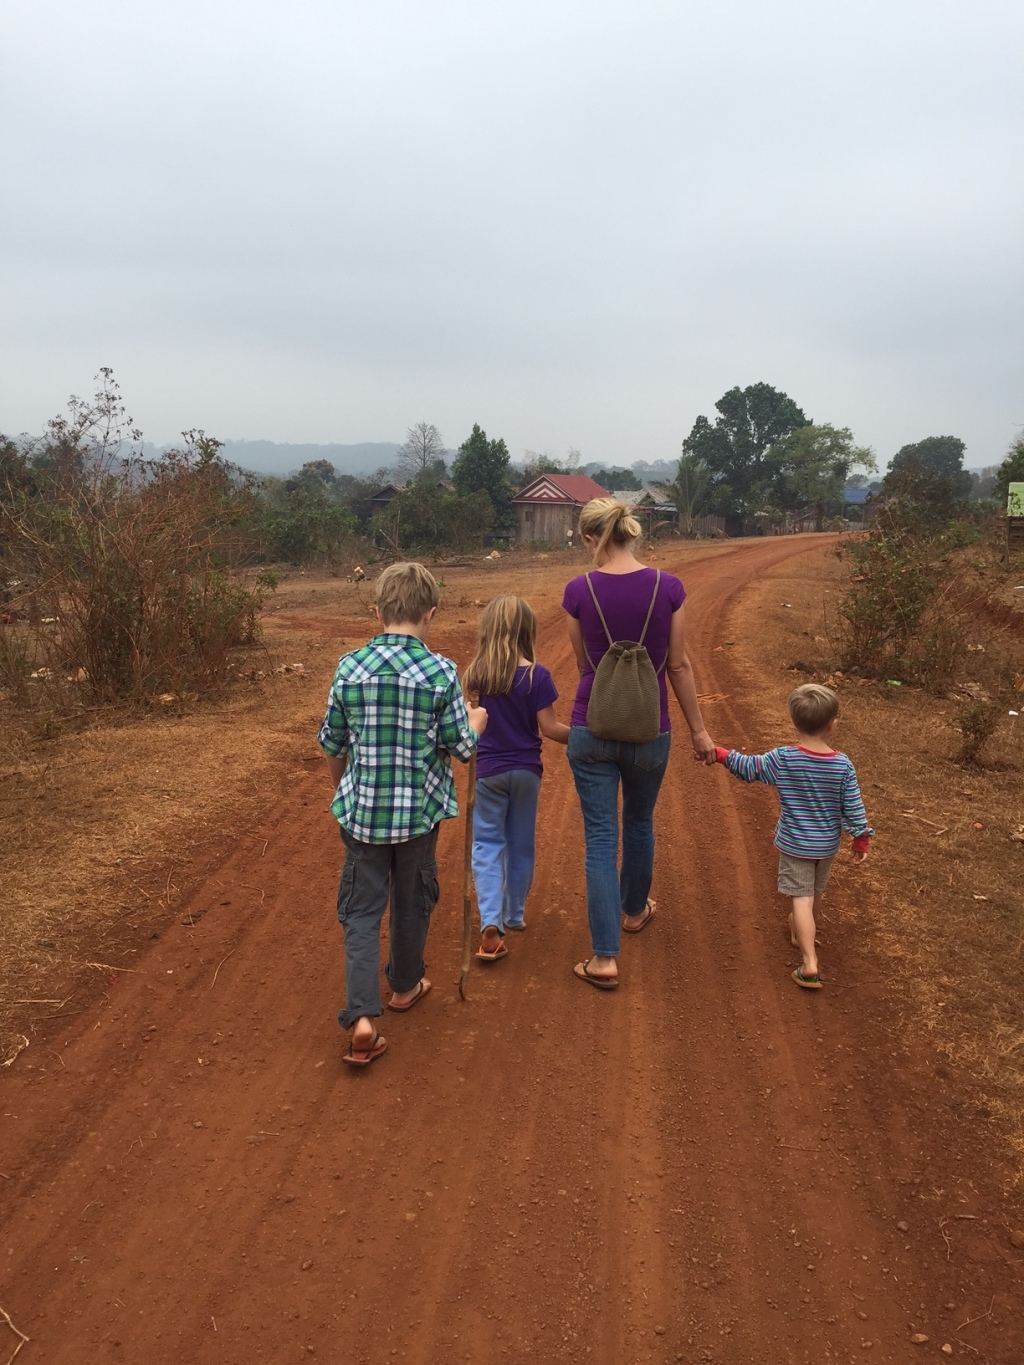 Ann walking with kids in village